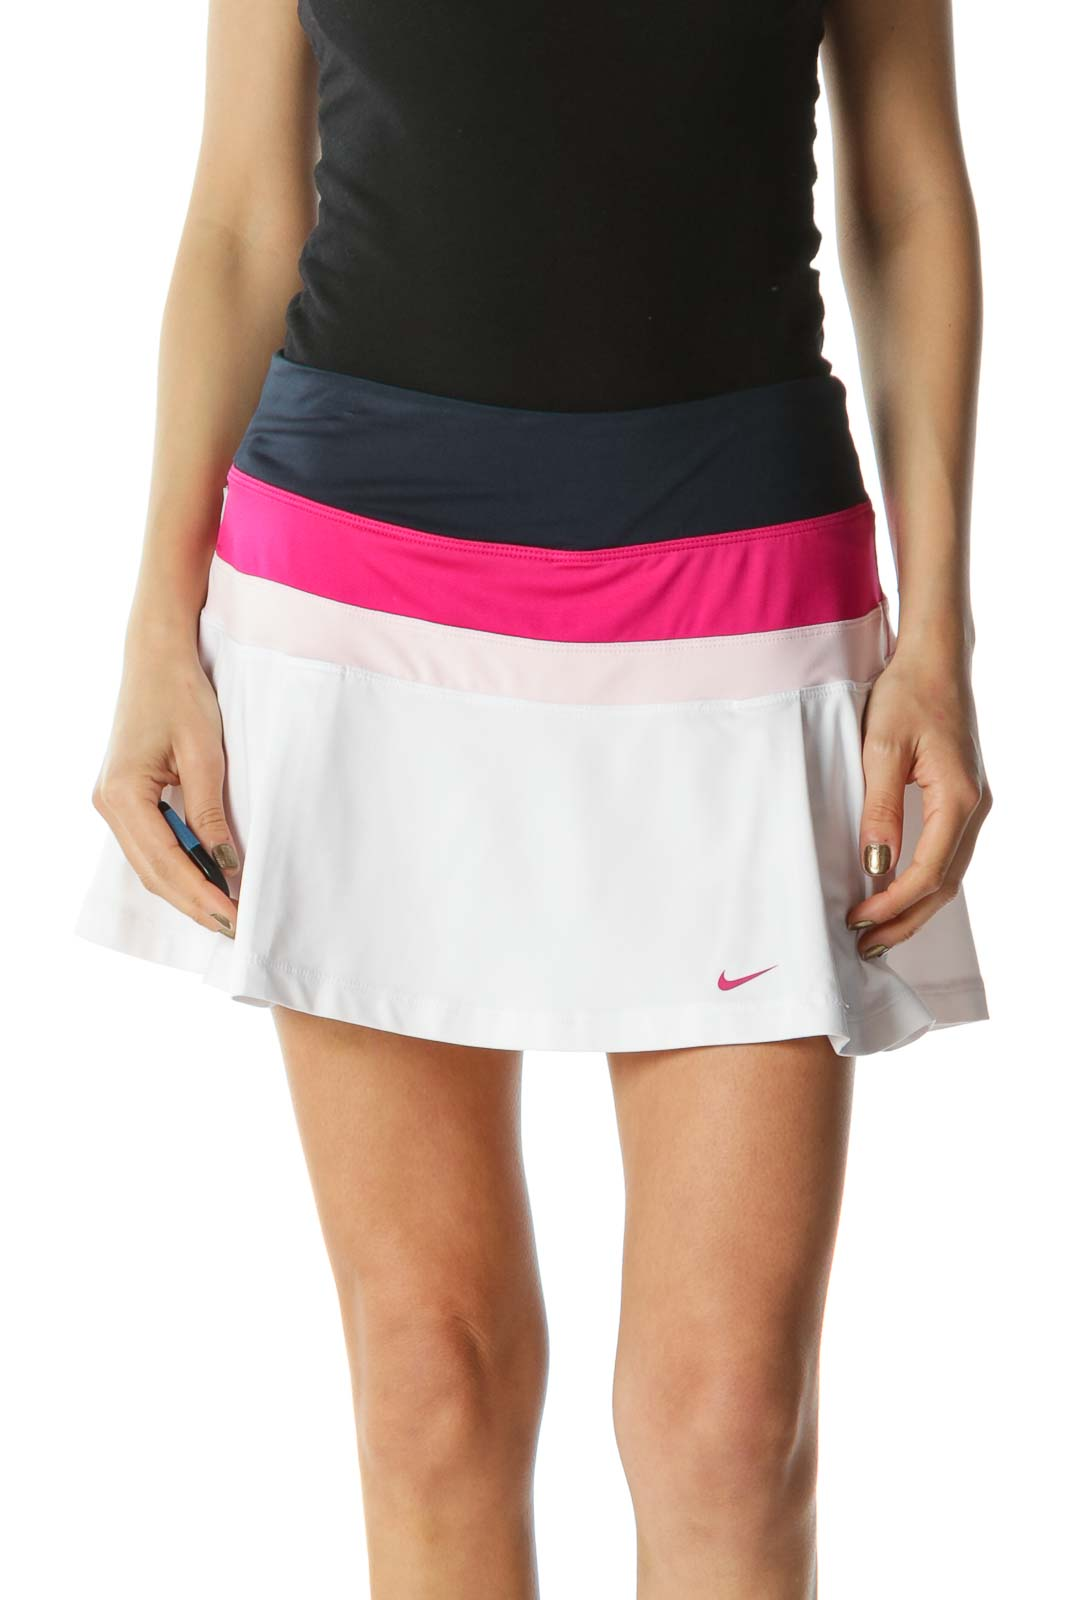 Navy, Pink, and White Flared Tennis Skirt with Shorts